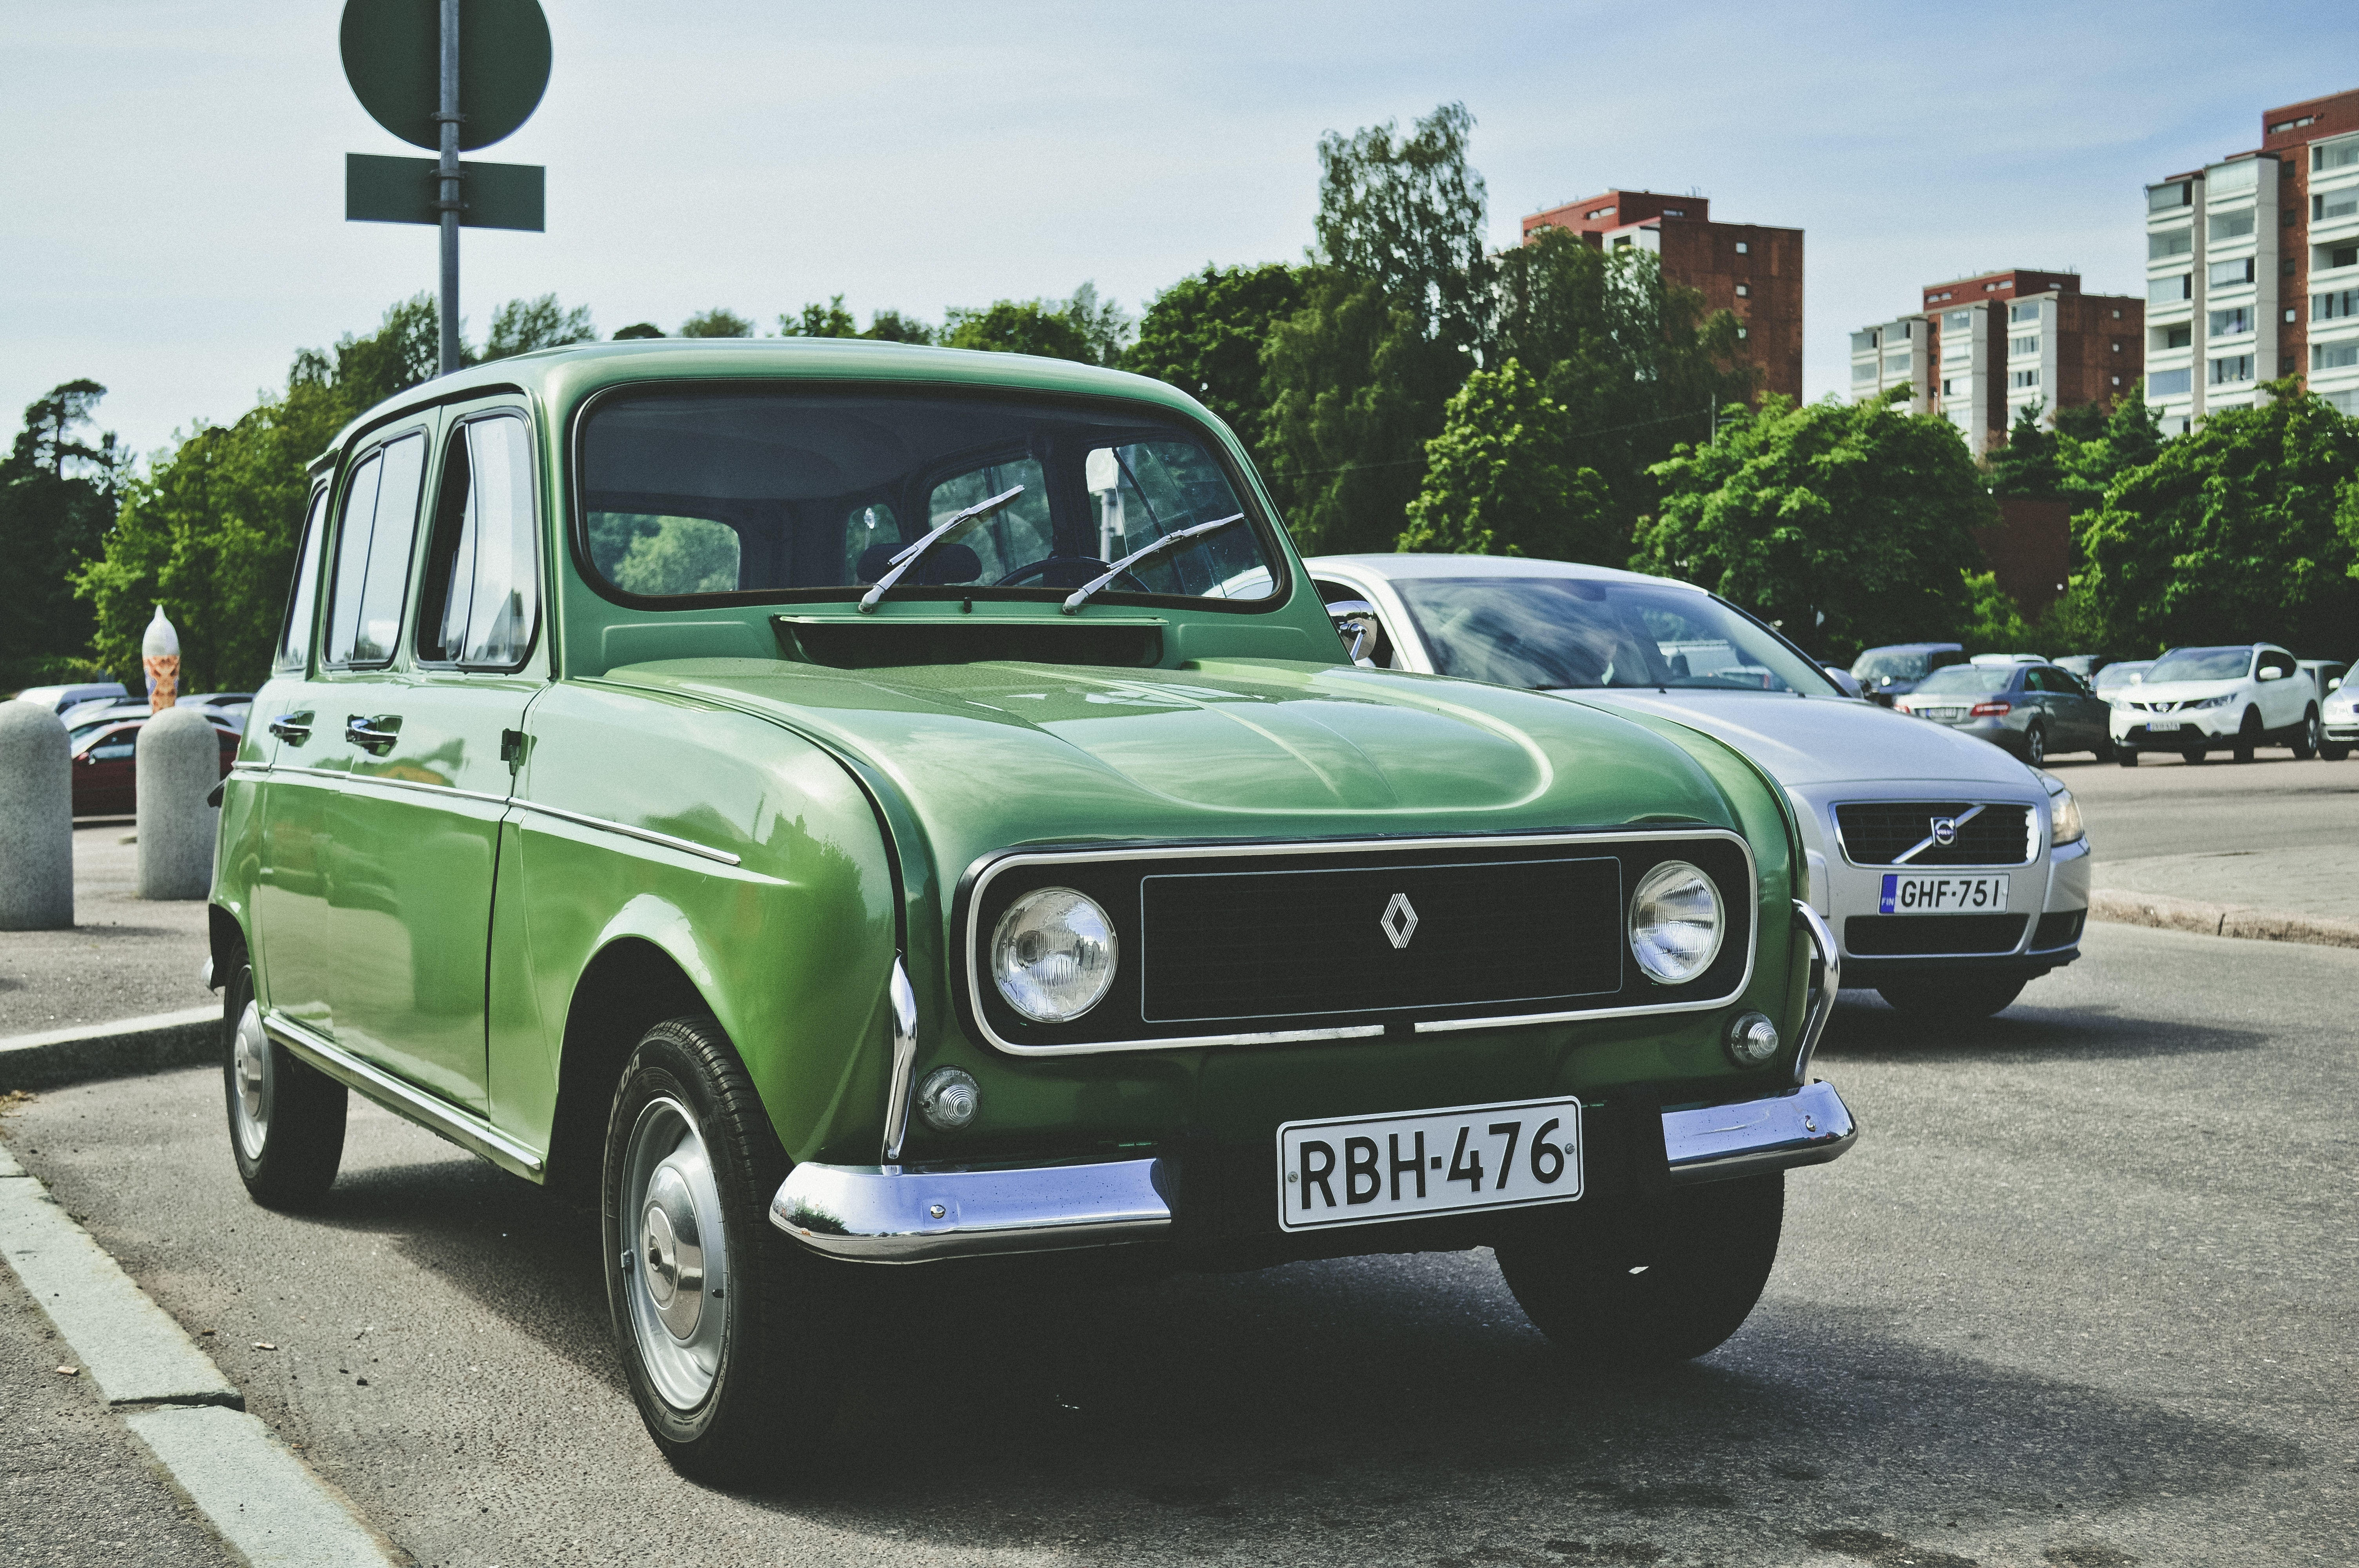 photo of green Renault car parking in roadway